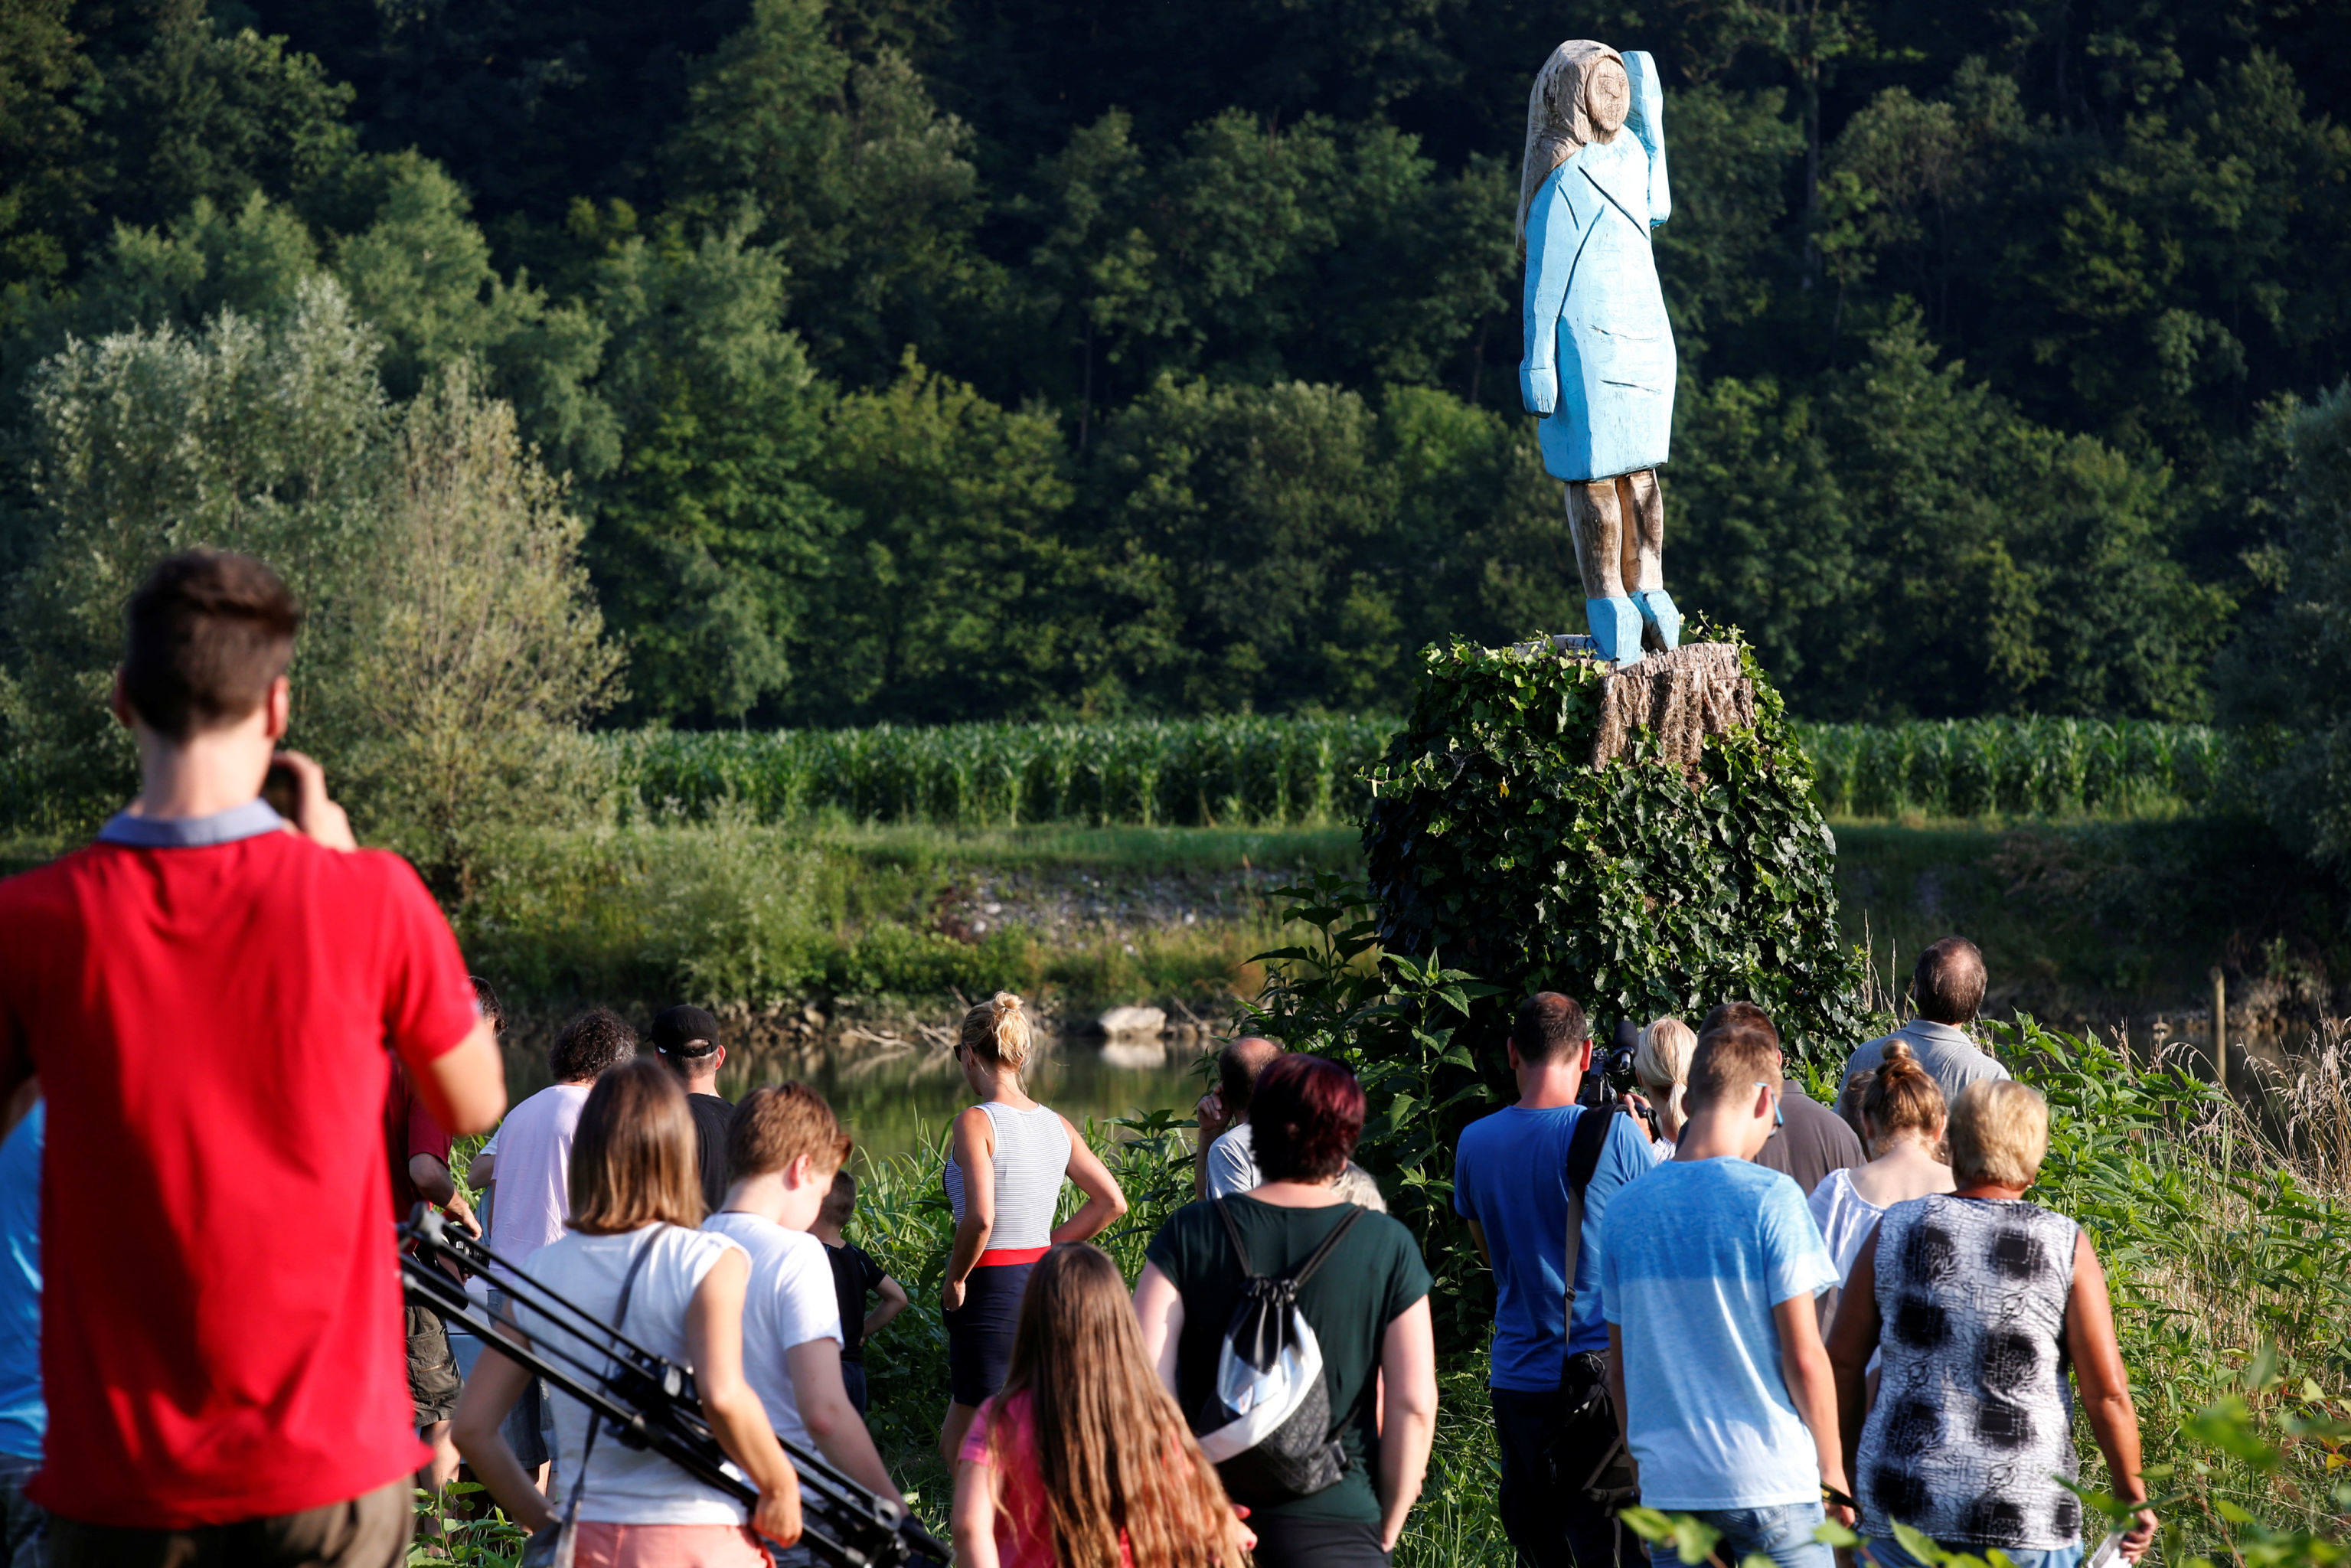 Life-size wooden sculpture of U.S. first lady Melania Trump is officially unveiled in Rozno, near her hometown of Sevnica, Slovenia, July 5, 2019. REUTERS/Borut Zivulovic